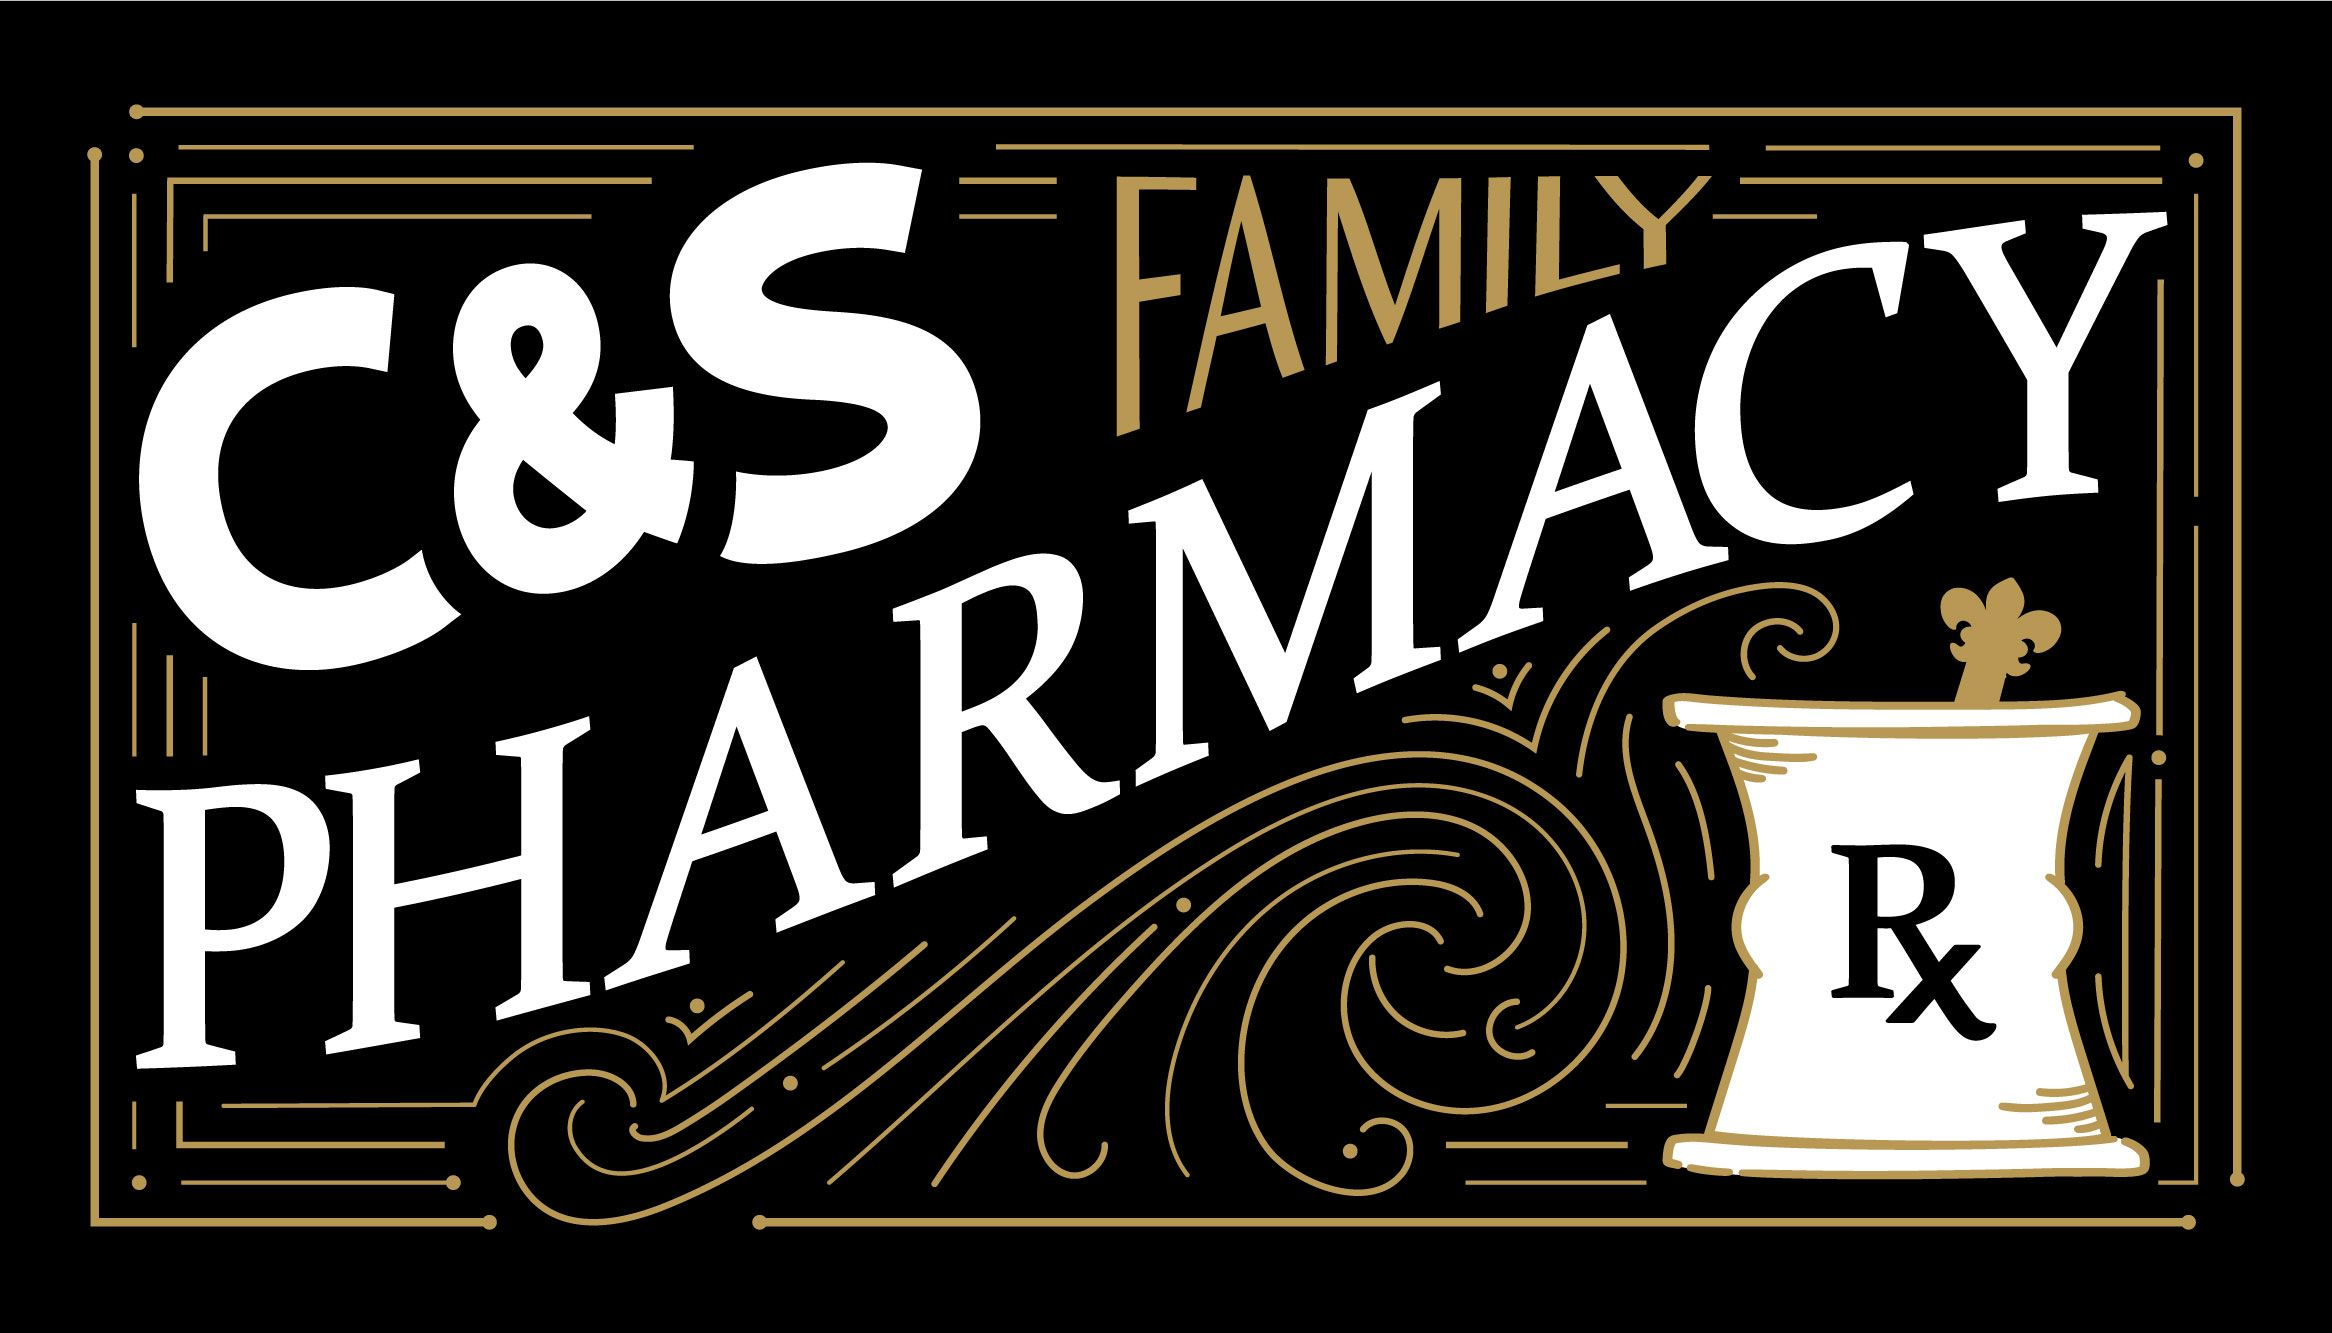 C&S Family Pharmacy